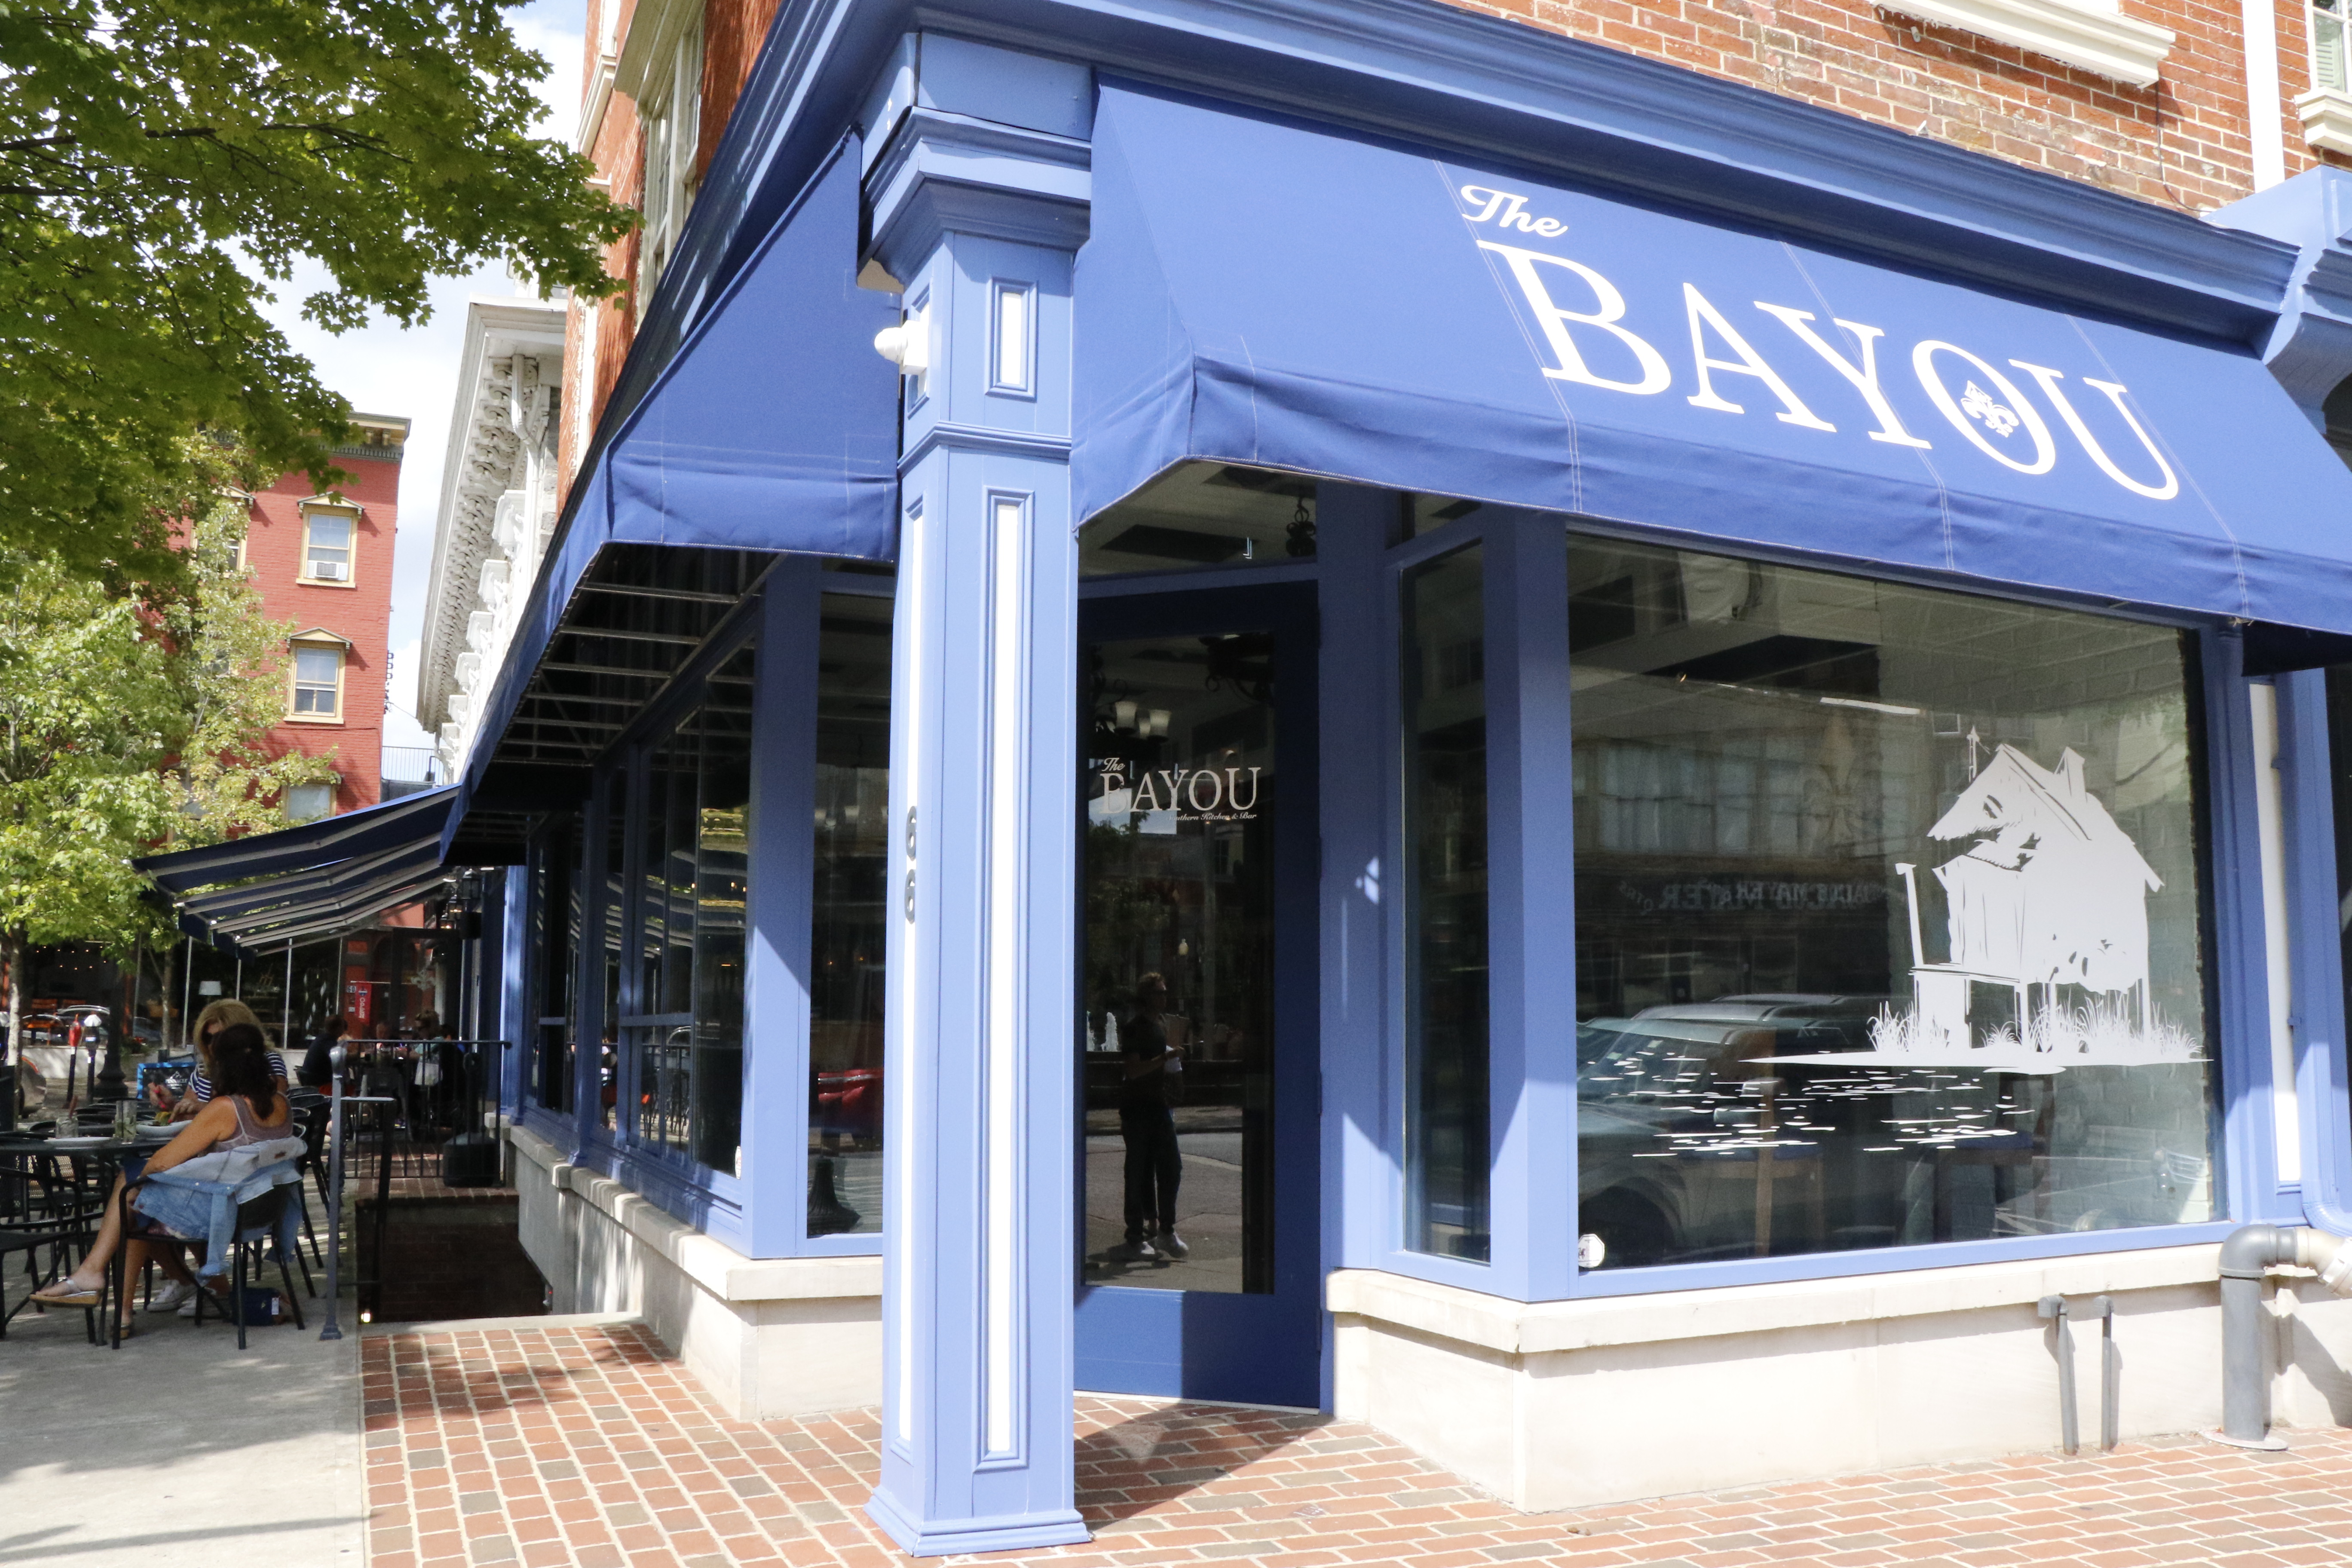 The Bayou Brings Southern Charm To Downtown Easton